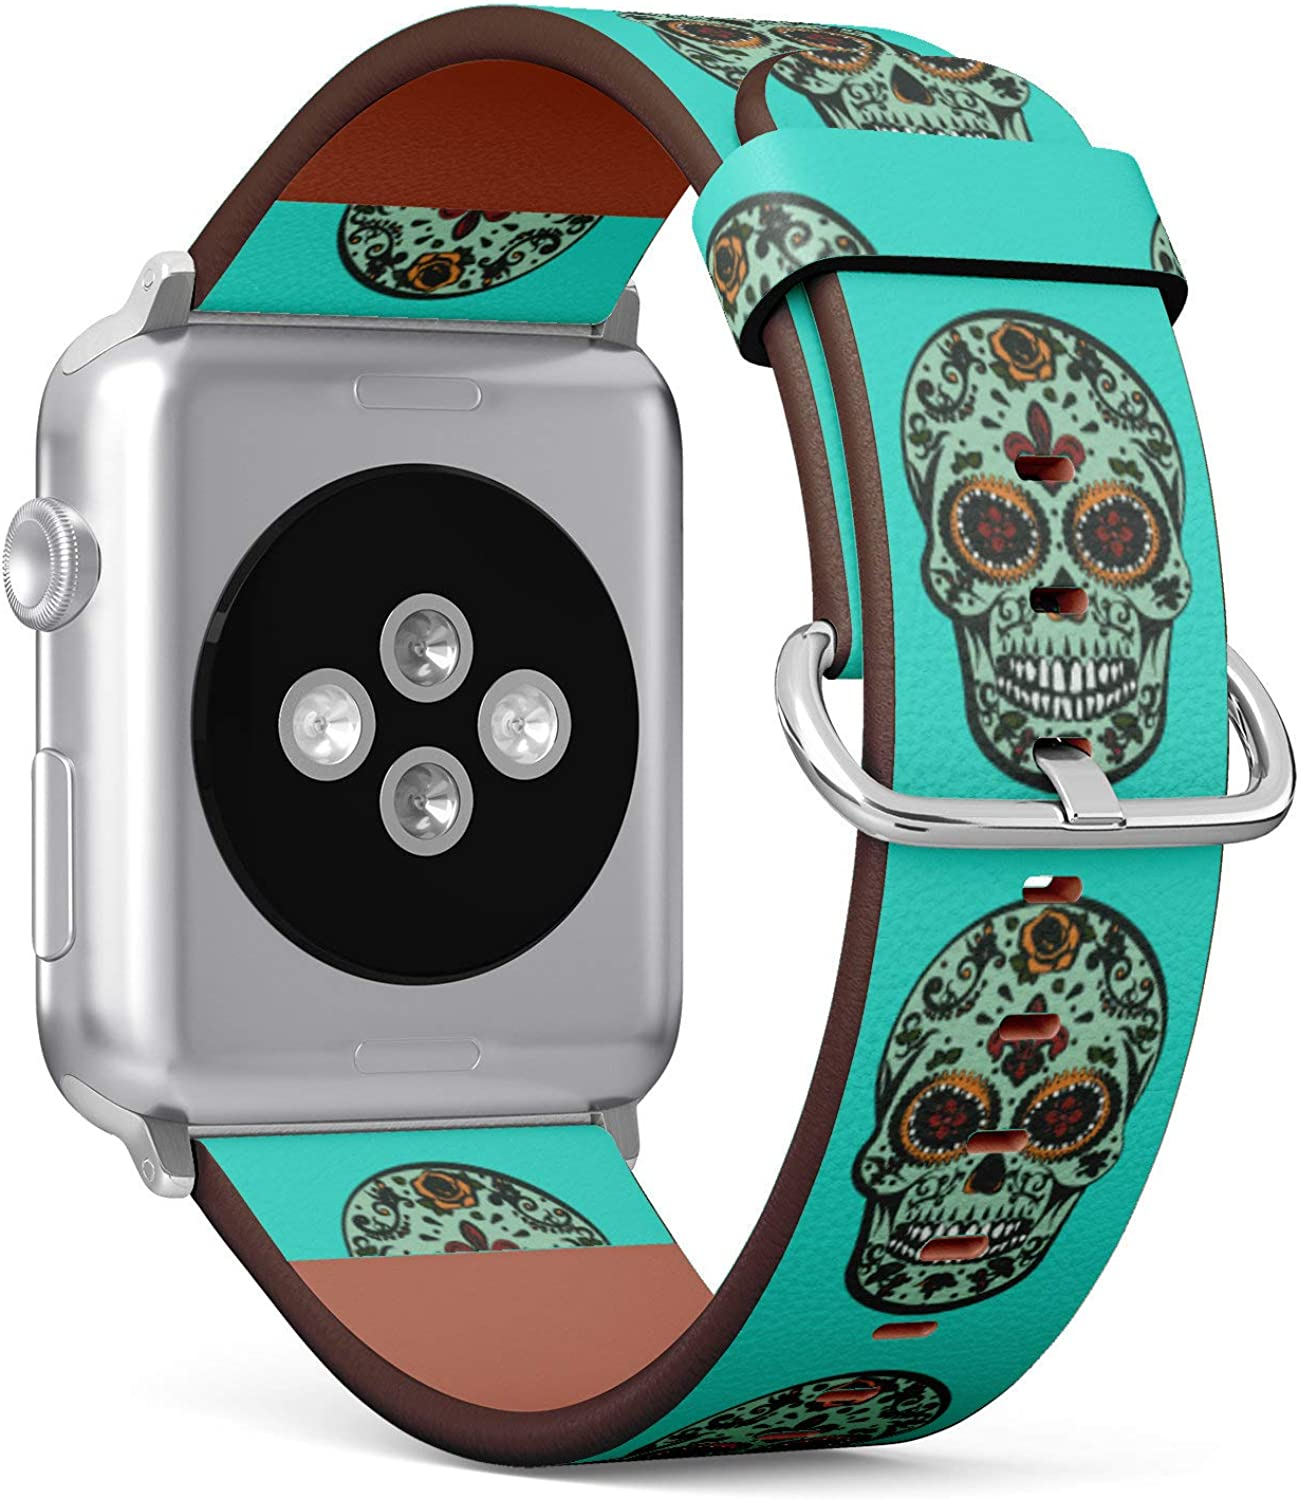 (Sugar Skull Turquoise Background) Patterned Leather Wristband Strap for Apple Watch Series 4/3/2/1 gen,Replacement for iWatch 42mm / 44mm Bands